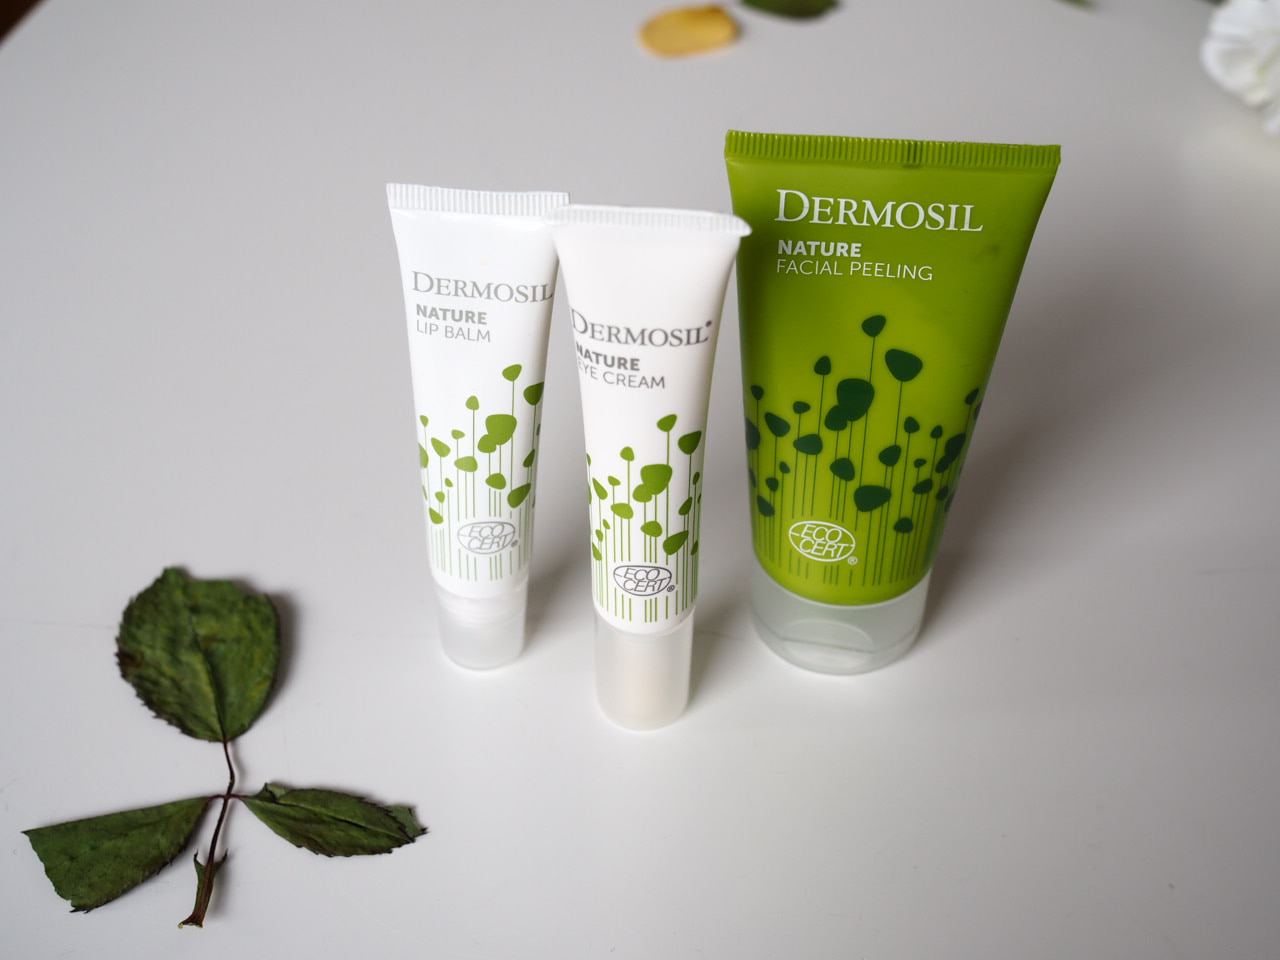 dermosil skincare products